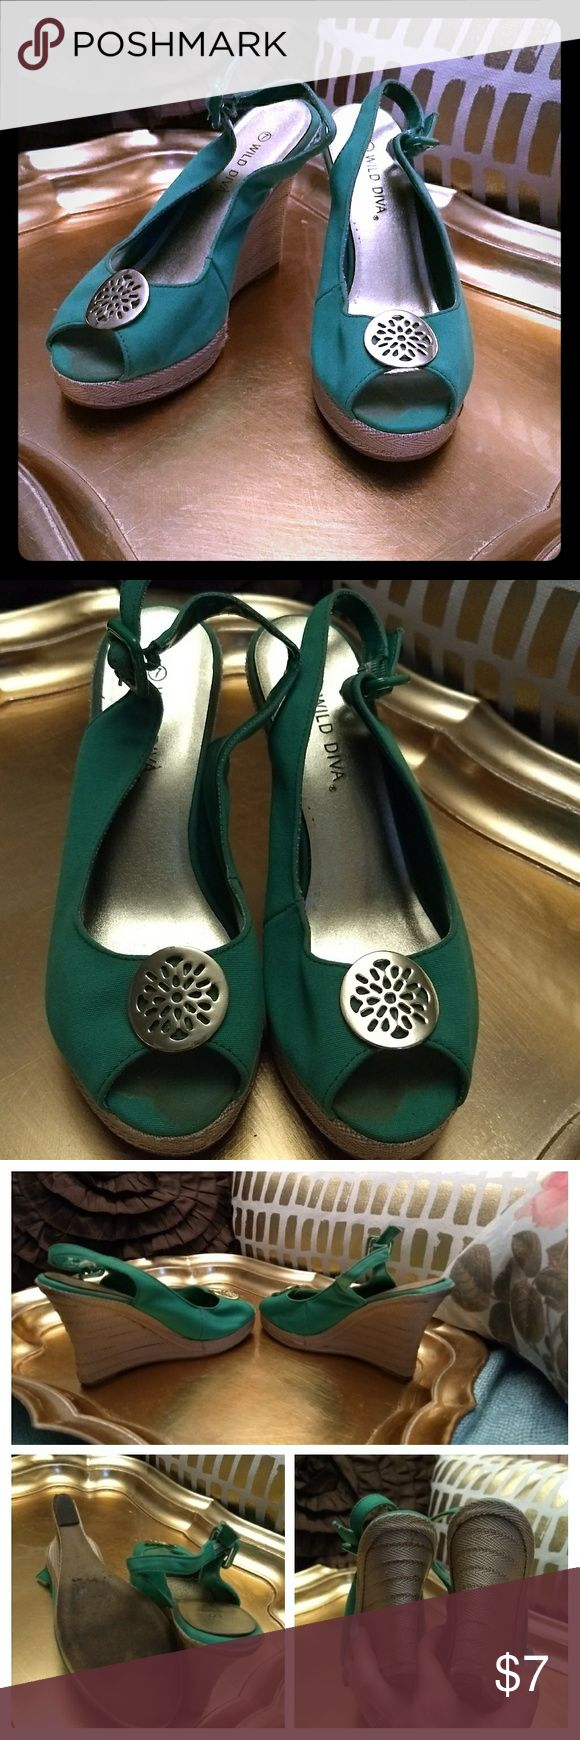 Kelly green wedge sandals guc 7 Well loved green wedges, please see pics! Still life left in these girls. Thanks for looking and have a fabulous day! :) Wild Diva Shoes Platforms